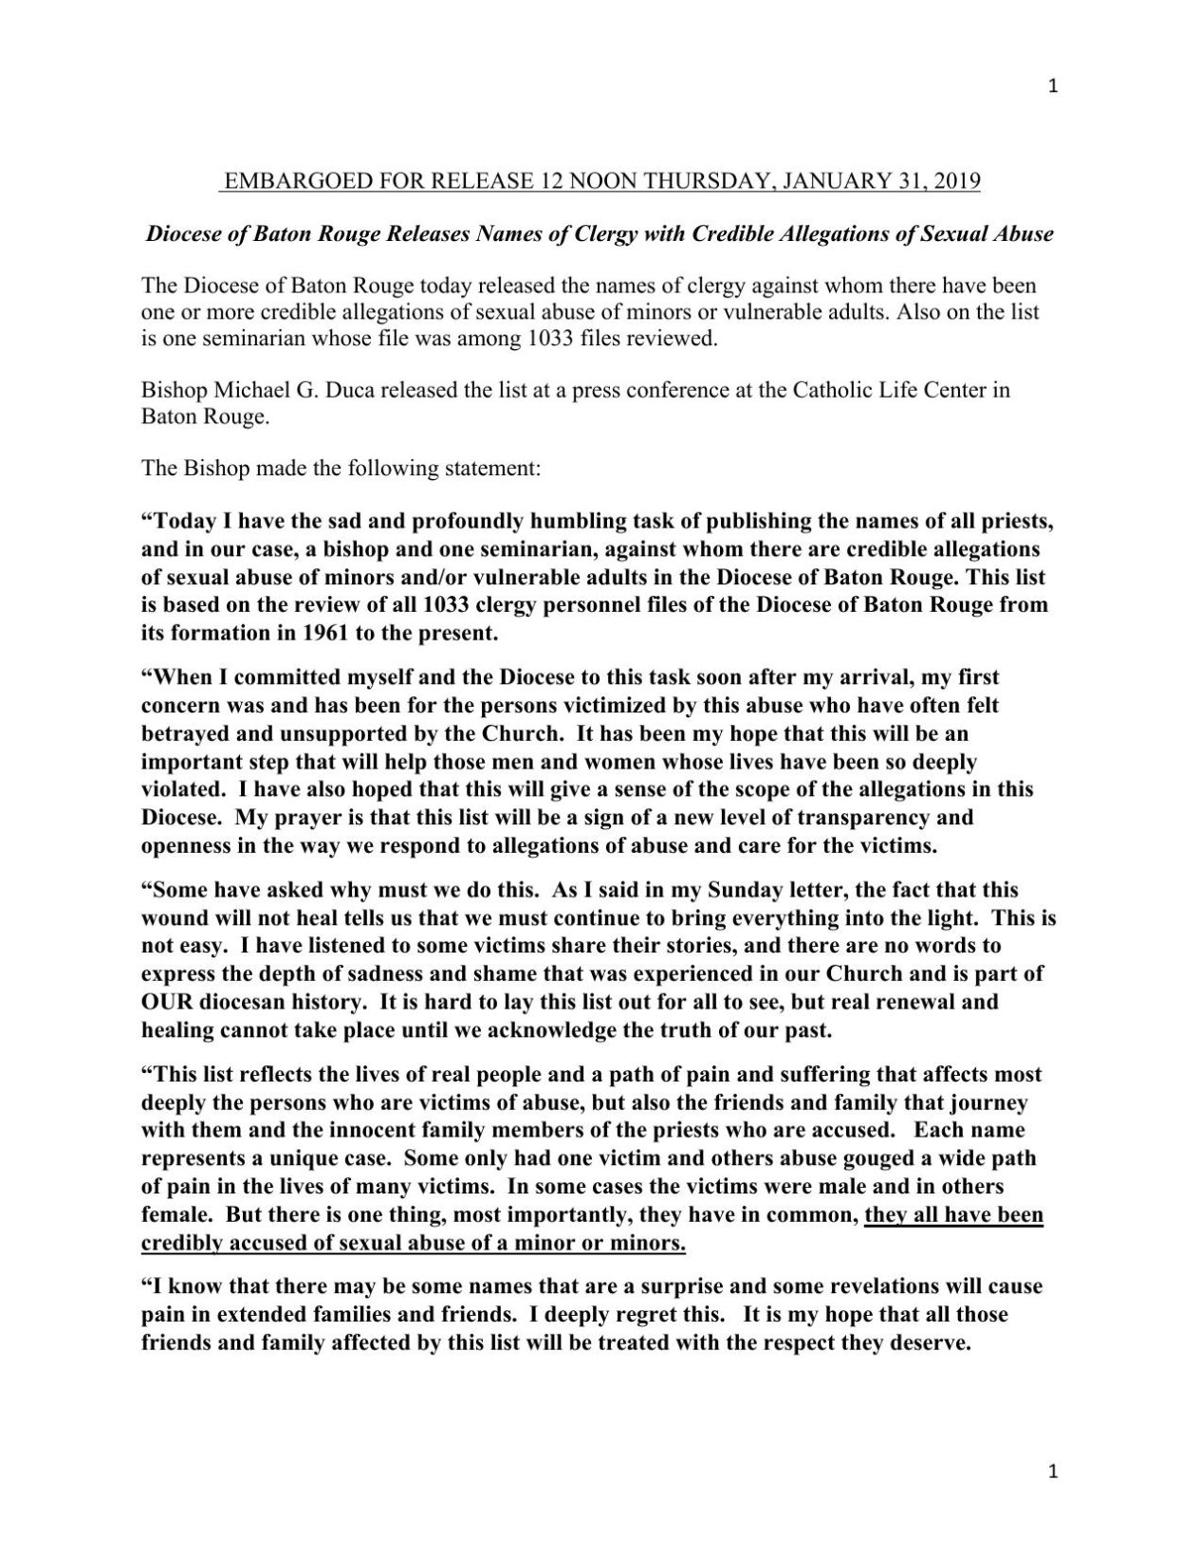 Diocese of Baton Rouge press release